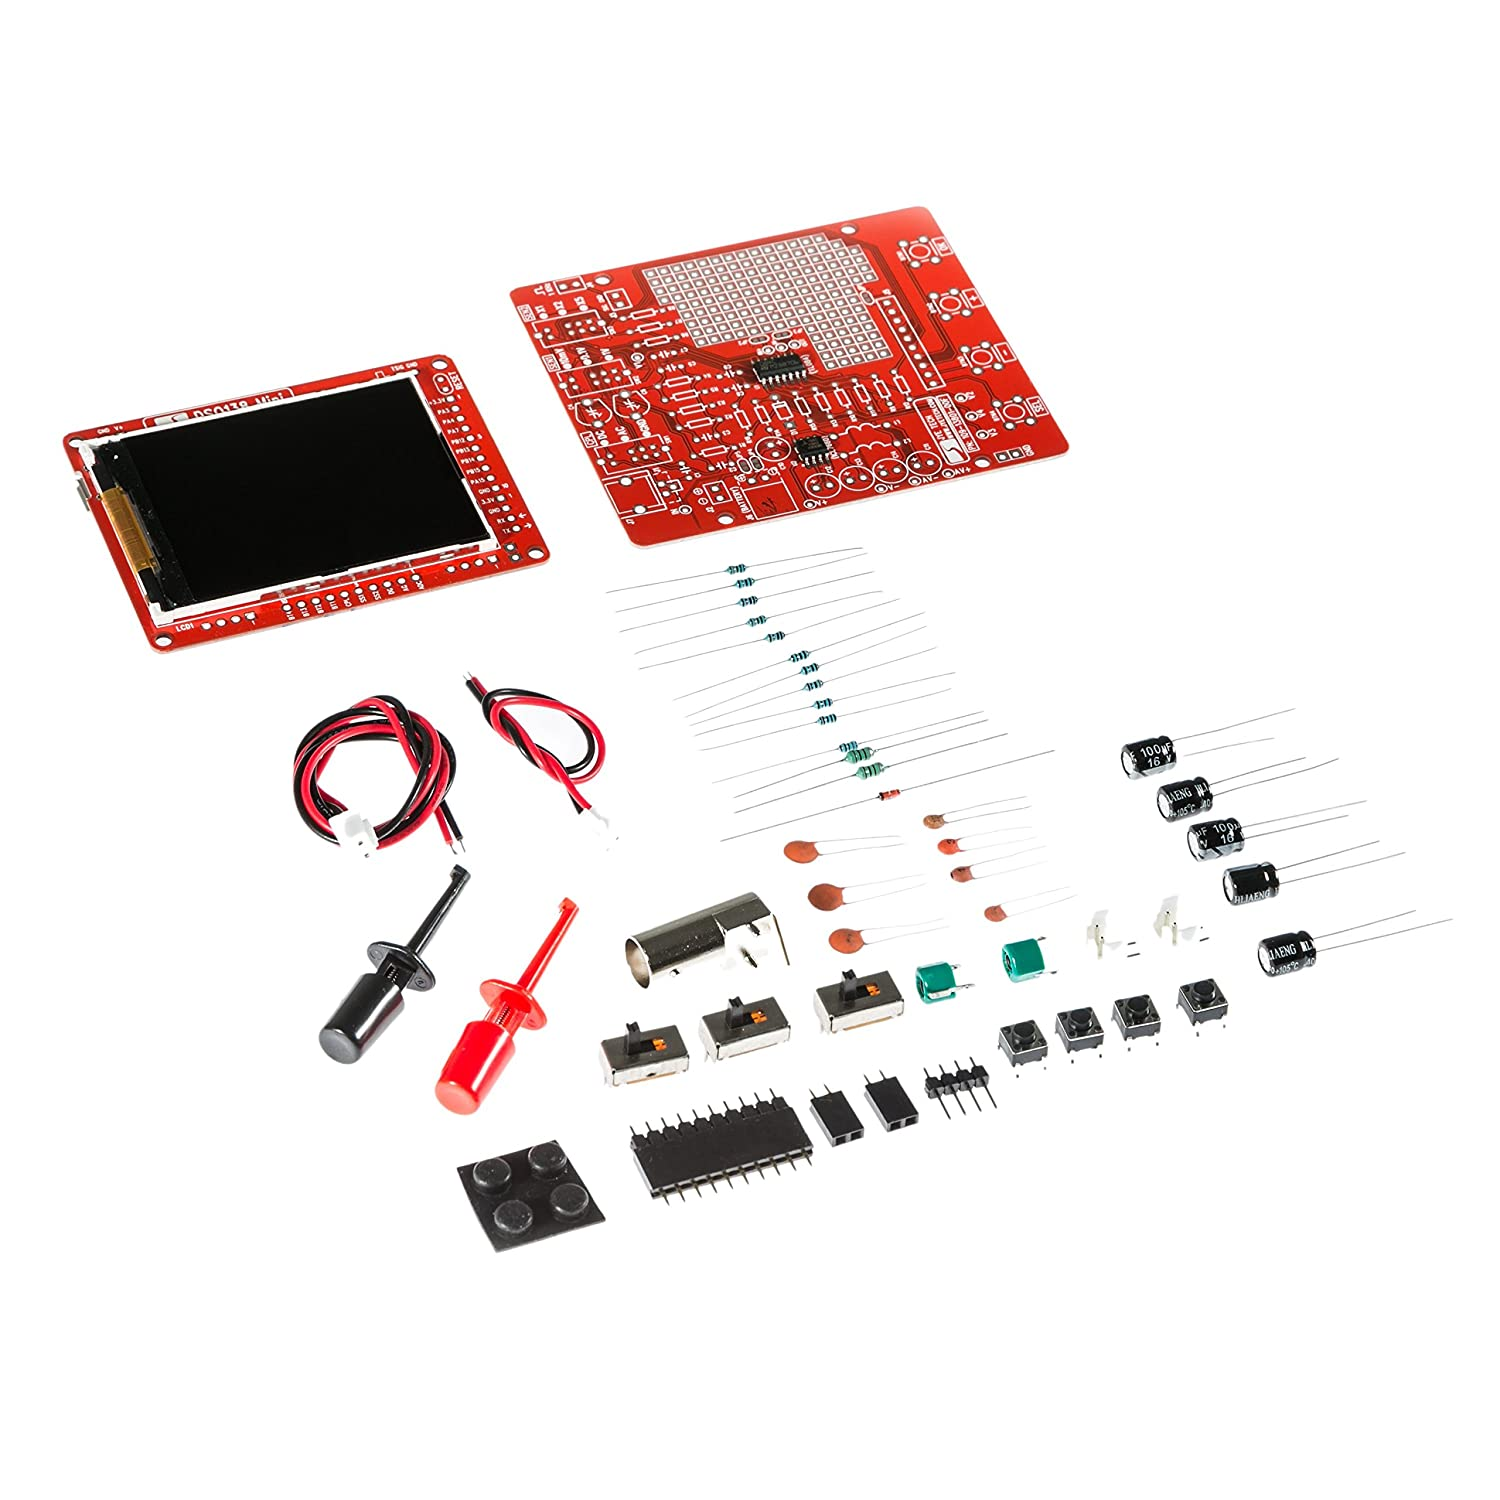 JYETech 'DSO 138 Mini' Oscilloscope DIY Kit w/Clip Probe by NooElec. Low Cost Portable Digital Storage Oscilloscope with 2.4' TFT LCD. Model DSO138 Mini; SKU 13805K NooElec Inc. DSO138mini